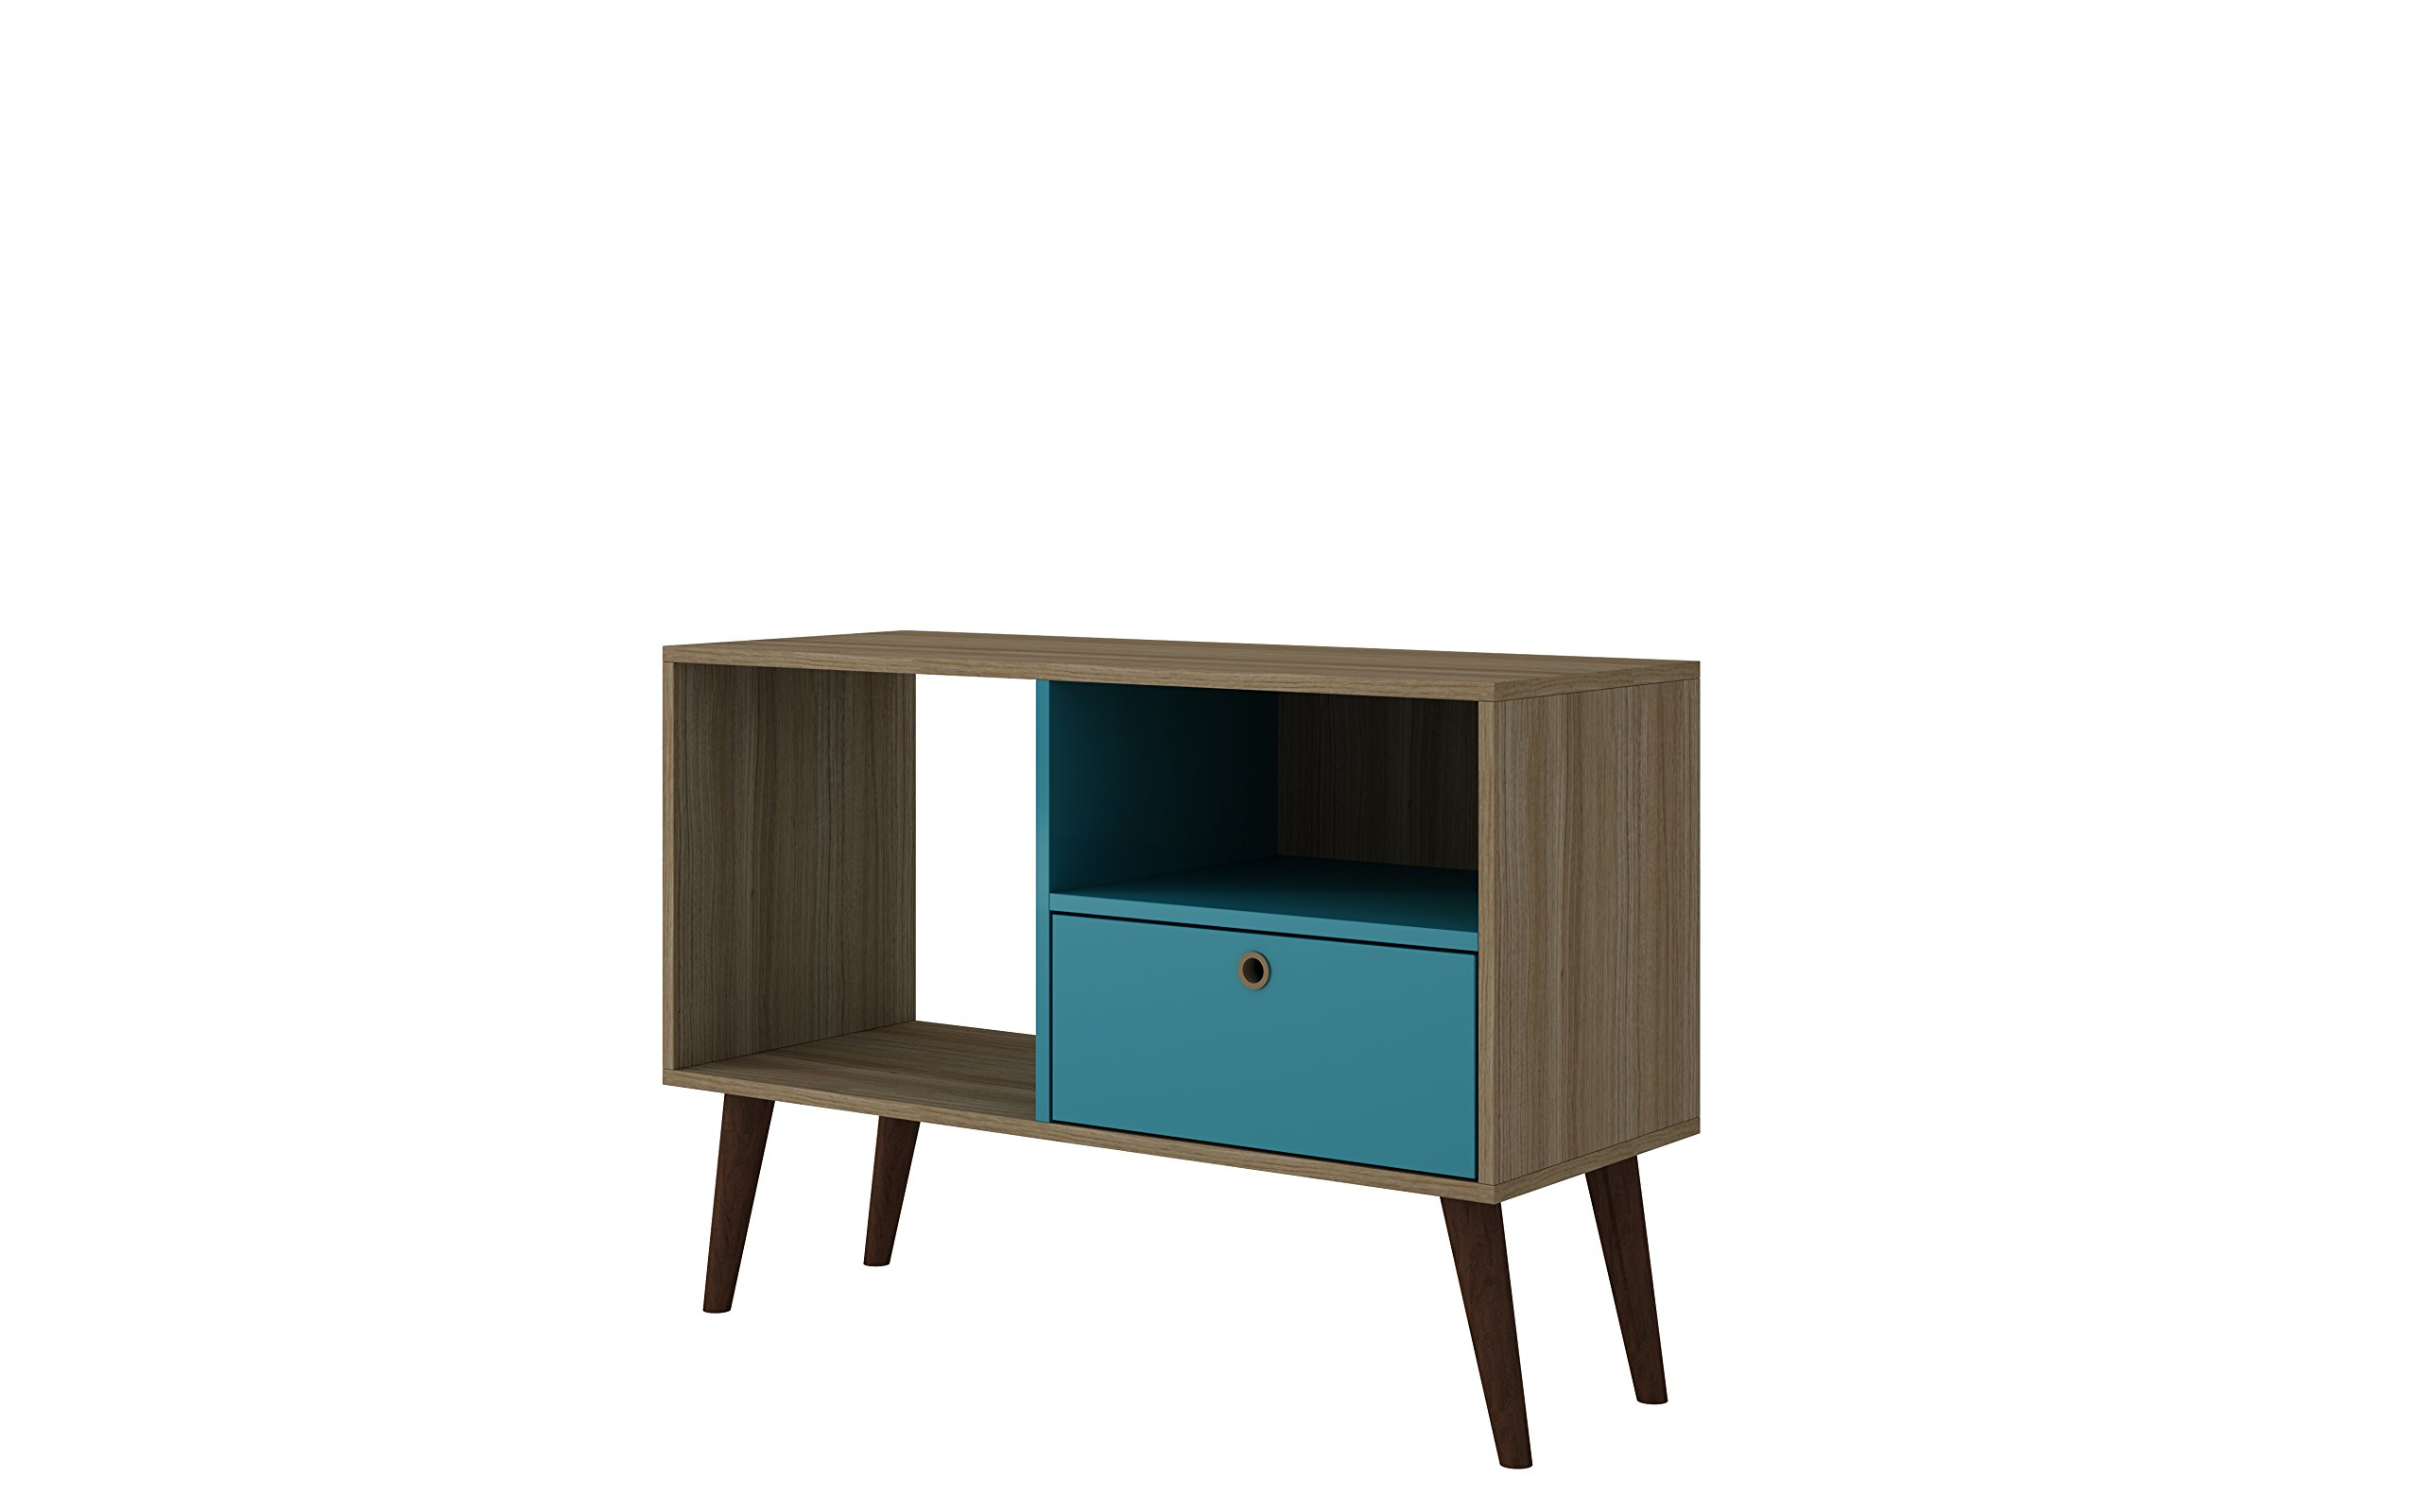 "Manhattan Comfort Bromma Collection Mid Century Modern TV Stand With Open Cubby Space and One Drawer With Splayed Legs, Wood/Teal - Ideal Dimensions: The Bromma Collection Introduces a Artistically Crafted TV Stand With Ideal Dimensions of 35.43"" x 24.8"" x 13.78"" and Weighs Only 31.41 lbs., Making it Easy to Place Anywhere in Your Home. Designed With Open Shelf Space, it is Easy to Store Your Cable Box or TV Console. The Size of This TV Stand Makes it Ideal for a 32"" Television. Upon Basic Assembly With Detailed Directions, You Can Begin to Enjoy This TV Stand With its Ideal Dimensions and Endless Possibilities Reliable Craftsmanship: Crafted From High Quality MDF, This TV Stand Has Been Designed to be Durable and Long Lasting. This TV Stand Can Be a Versatile Accent Addition to Your Home, Placed in Any Room. Additionally, This TV Stand Can Be Multifunctional and Easily be Used to Store Different Items as Necessary. Designed to Accomodate a 32"" TV Mid Century Modern Design: This TV Stand Has Been Designed to Enhance Your Home Décor With a Elegant Mid Century Modern Appeal. The Splayed Legs Give it a Beautiful Look That Makes it a Must Have. The Storage Compartment and Open Cubby Shelf Space Makes it a Practical Addition Because it is Easy to Put Away Items and Enjoy the Access to Your Television. Would Make for a Great and Practical Addition to Any Room in Your Home - tv-stands, living-room-furniture, living-room - 71Kjn6ciORL -"